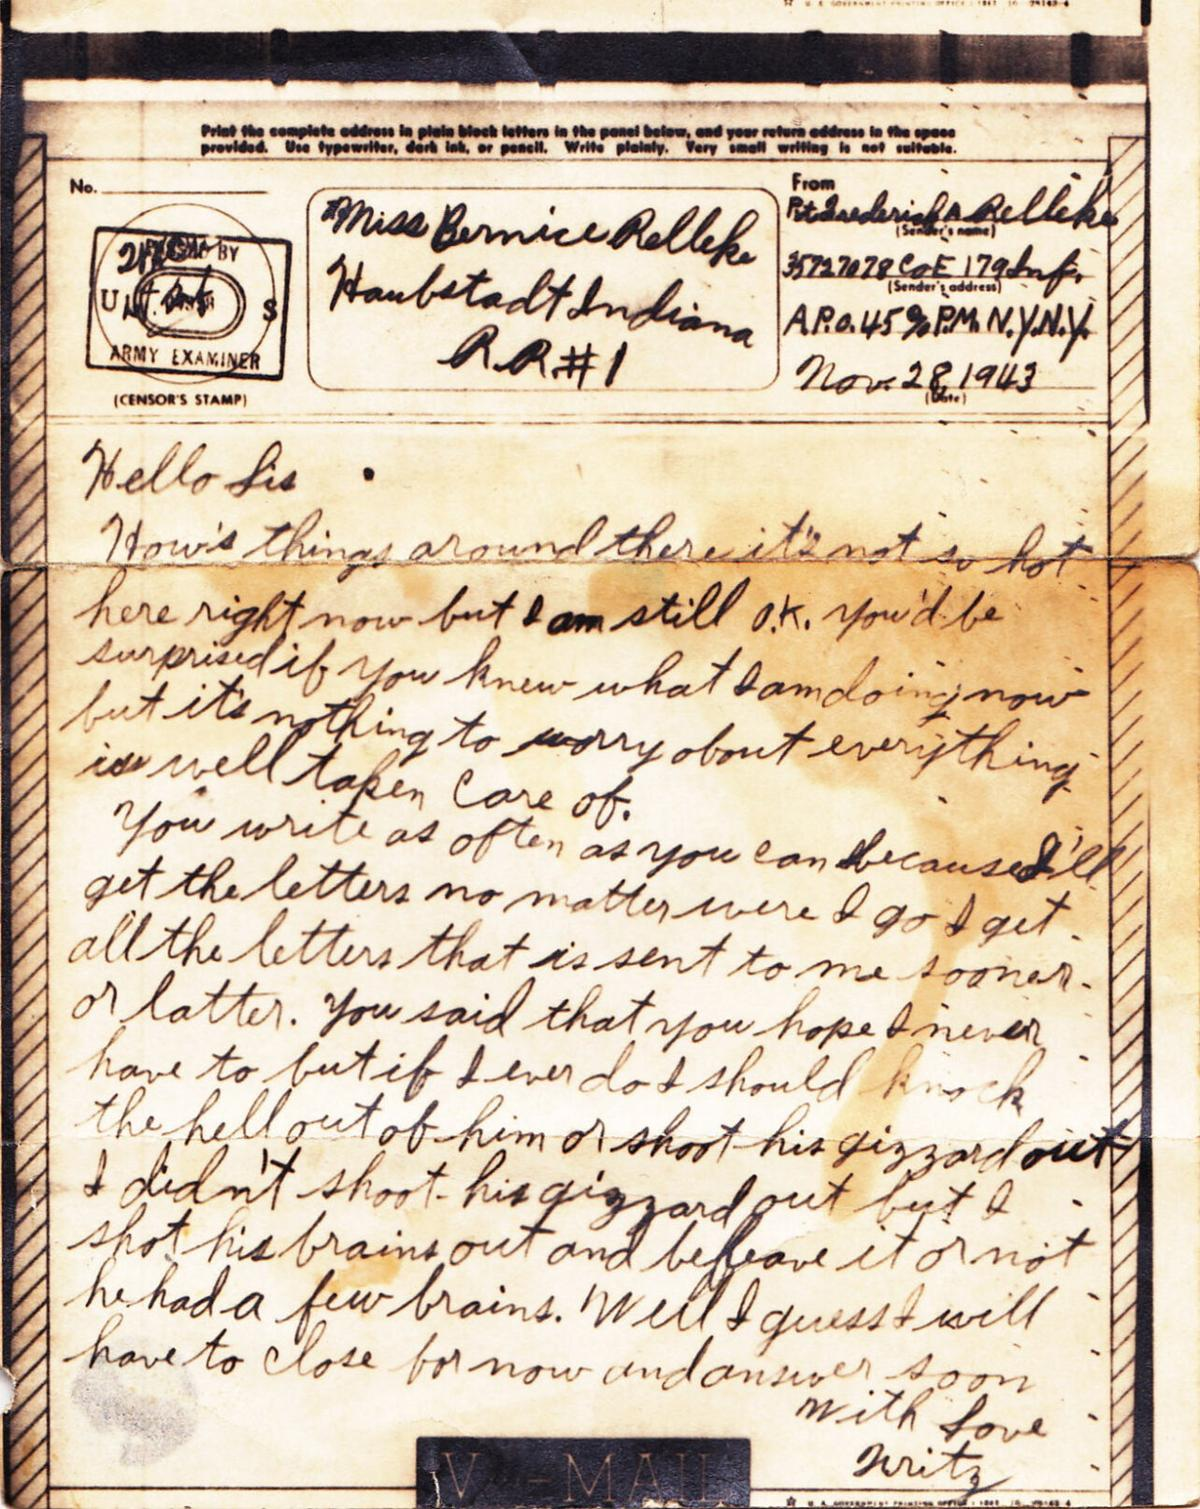 World War II letter